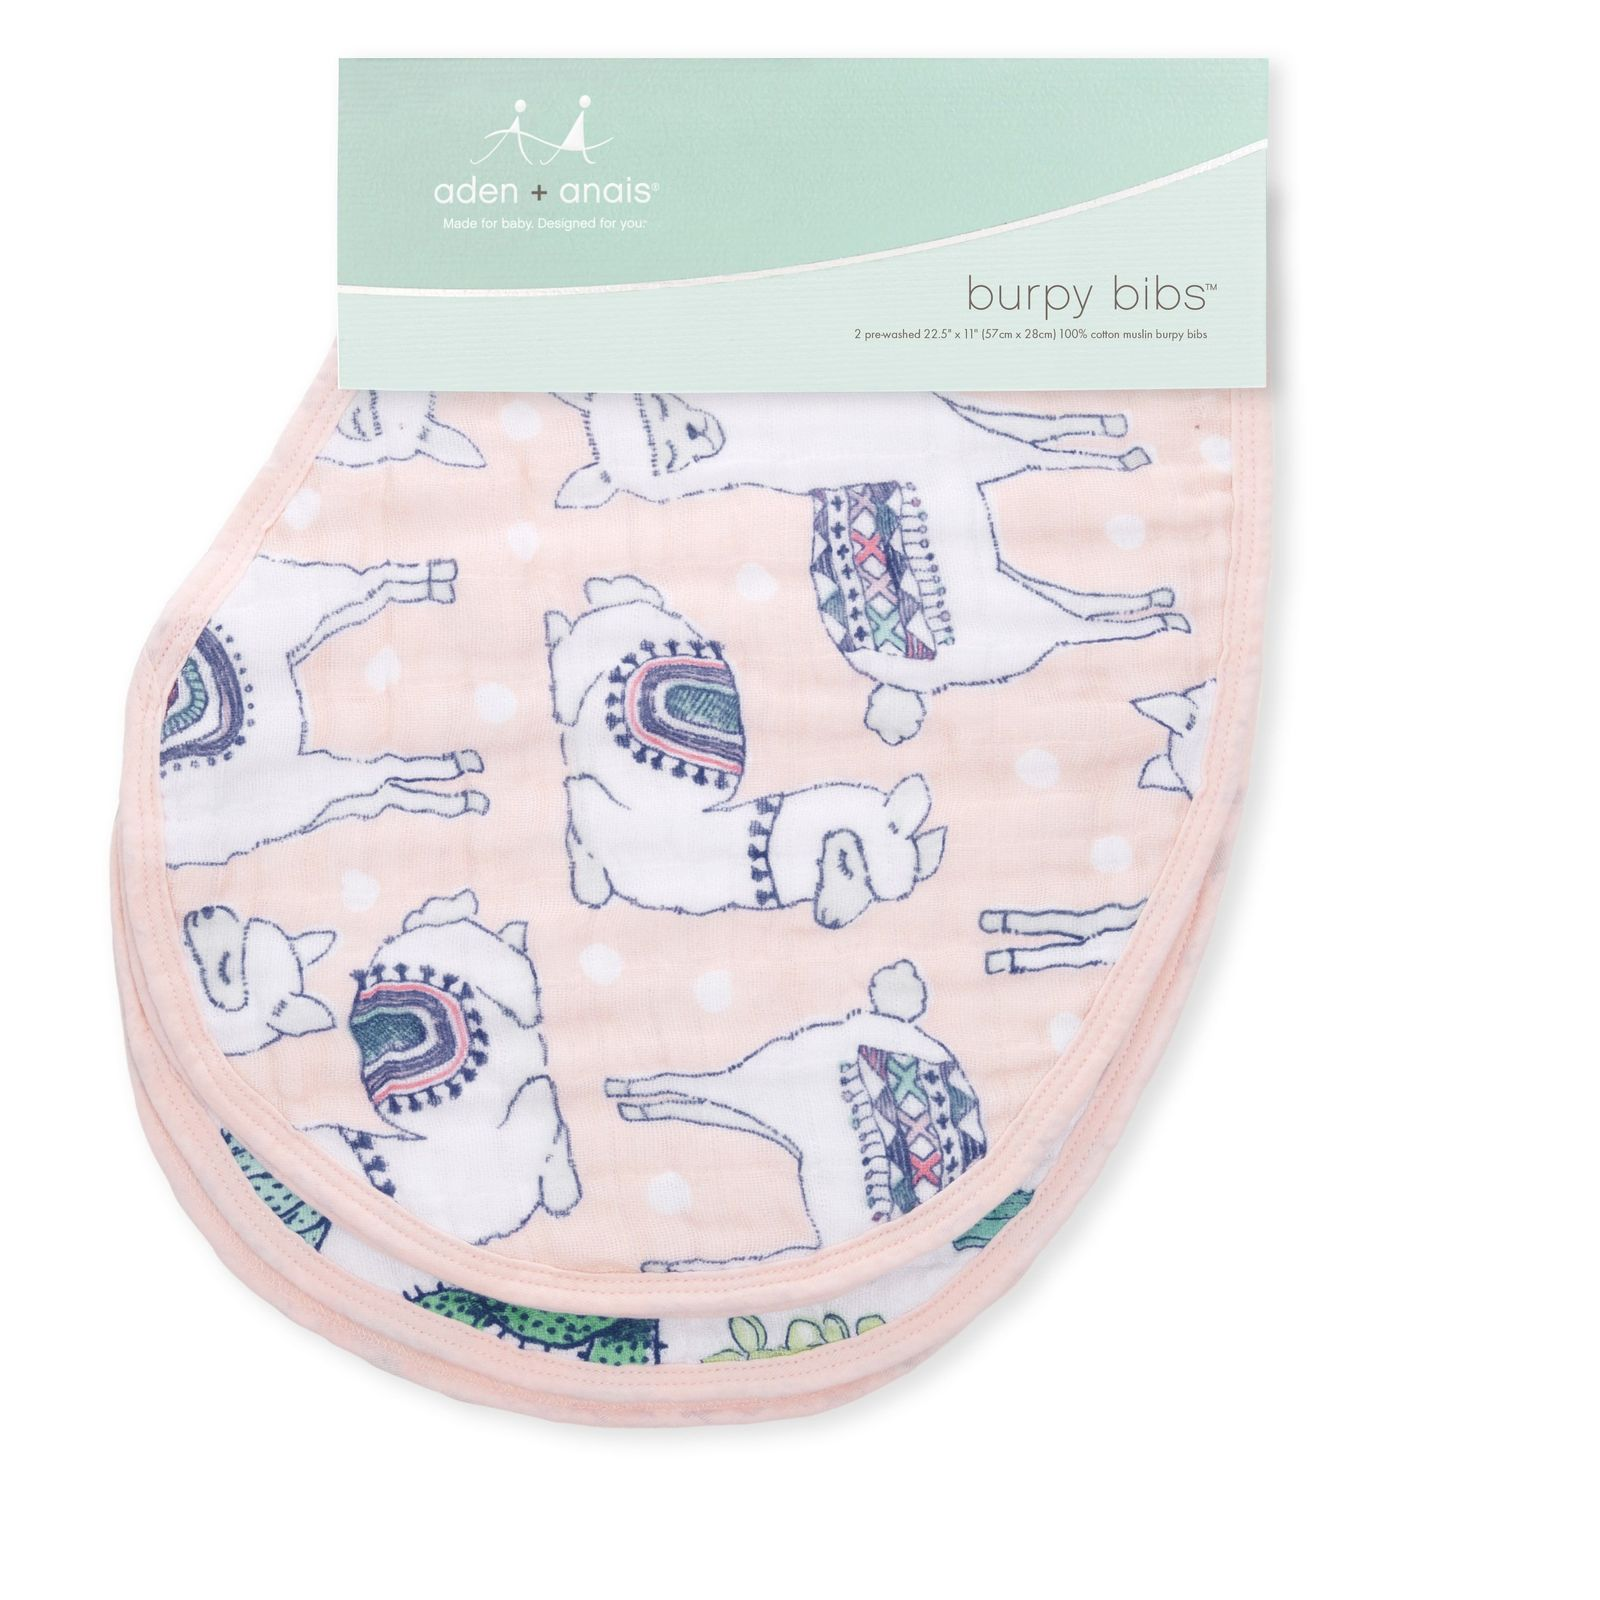 Aden + Anais: Classic Burpy Bib - Trail Blooms (2 Pack) image